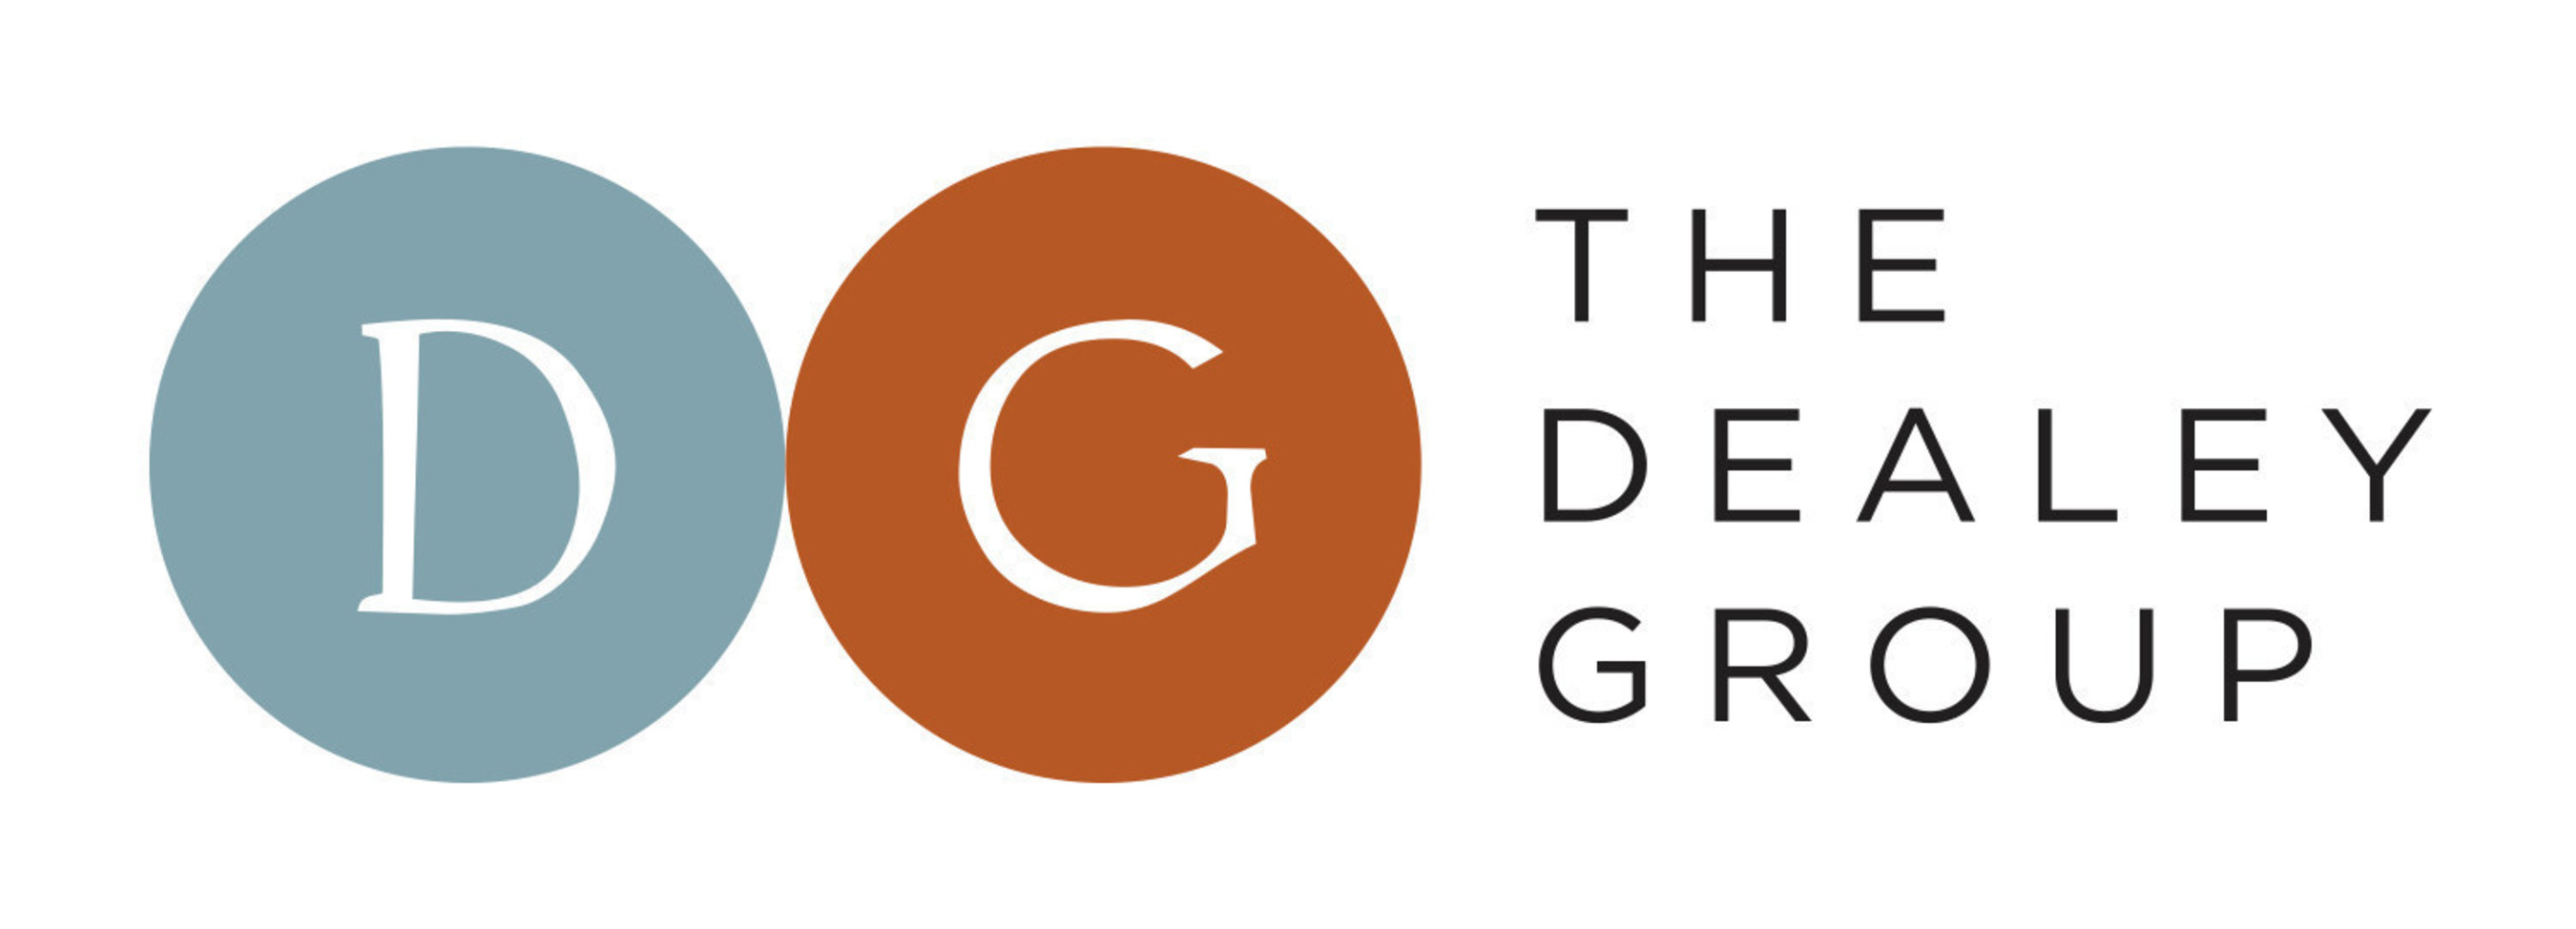 The Dealey Group Taps Jesse Tron, Former VP of Communications for ICSC, to Run New Corporate Communications & PR Practice